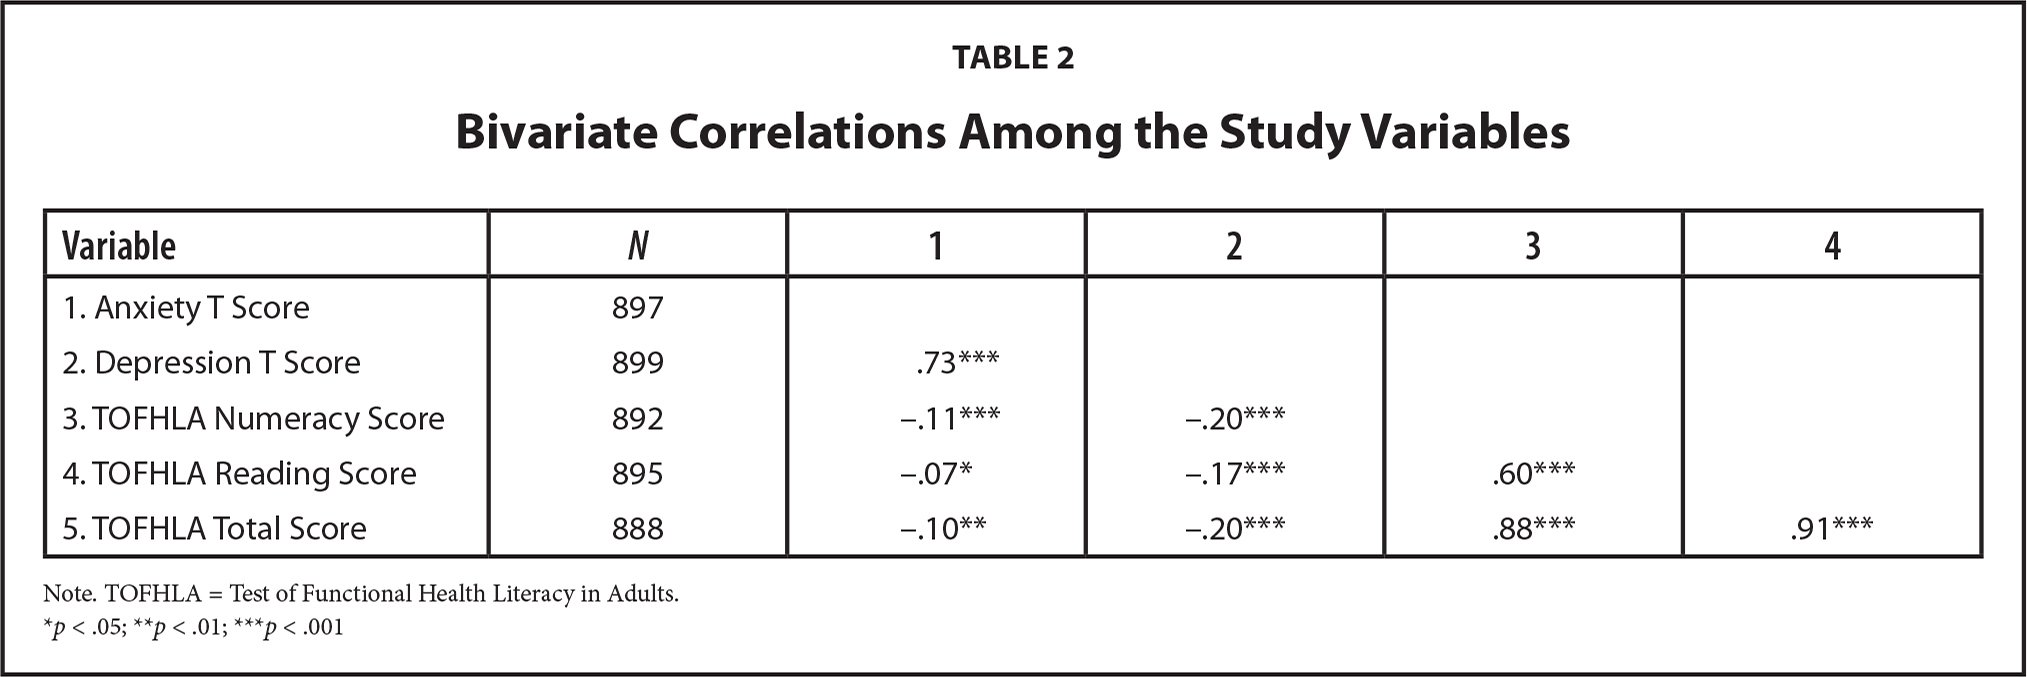 Bivariate Correlations Among the Study Variables